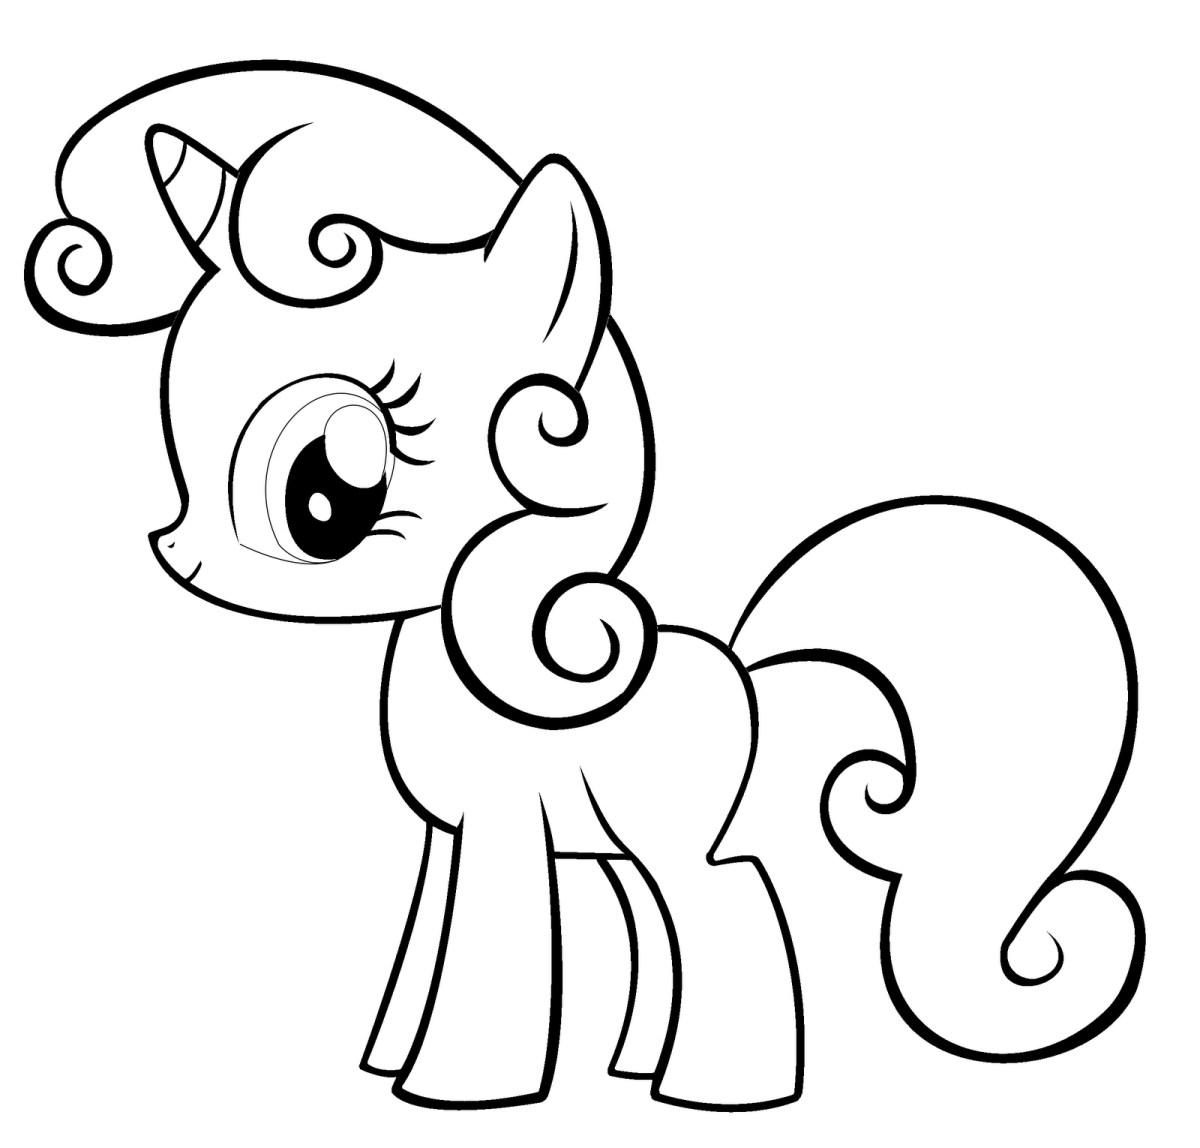 Cadence My Little Pony Coloring Pages - Get coloring Books